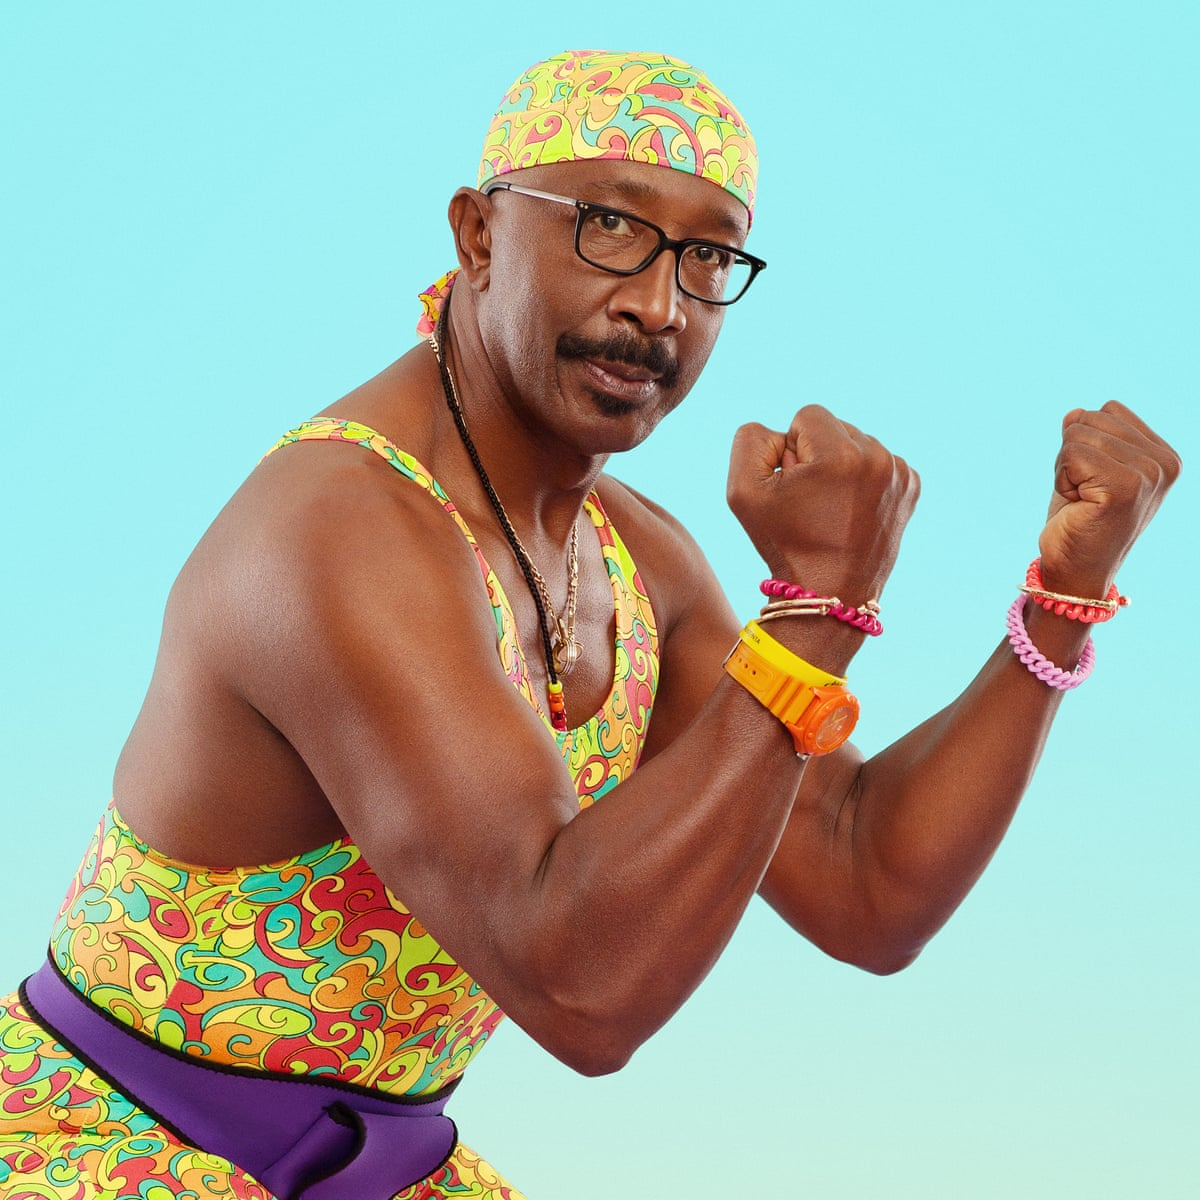 Still Got It What Happened To Fitness Superstar Mr Motivator Fitness The Guardian